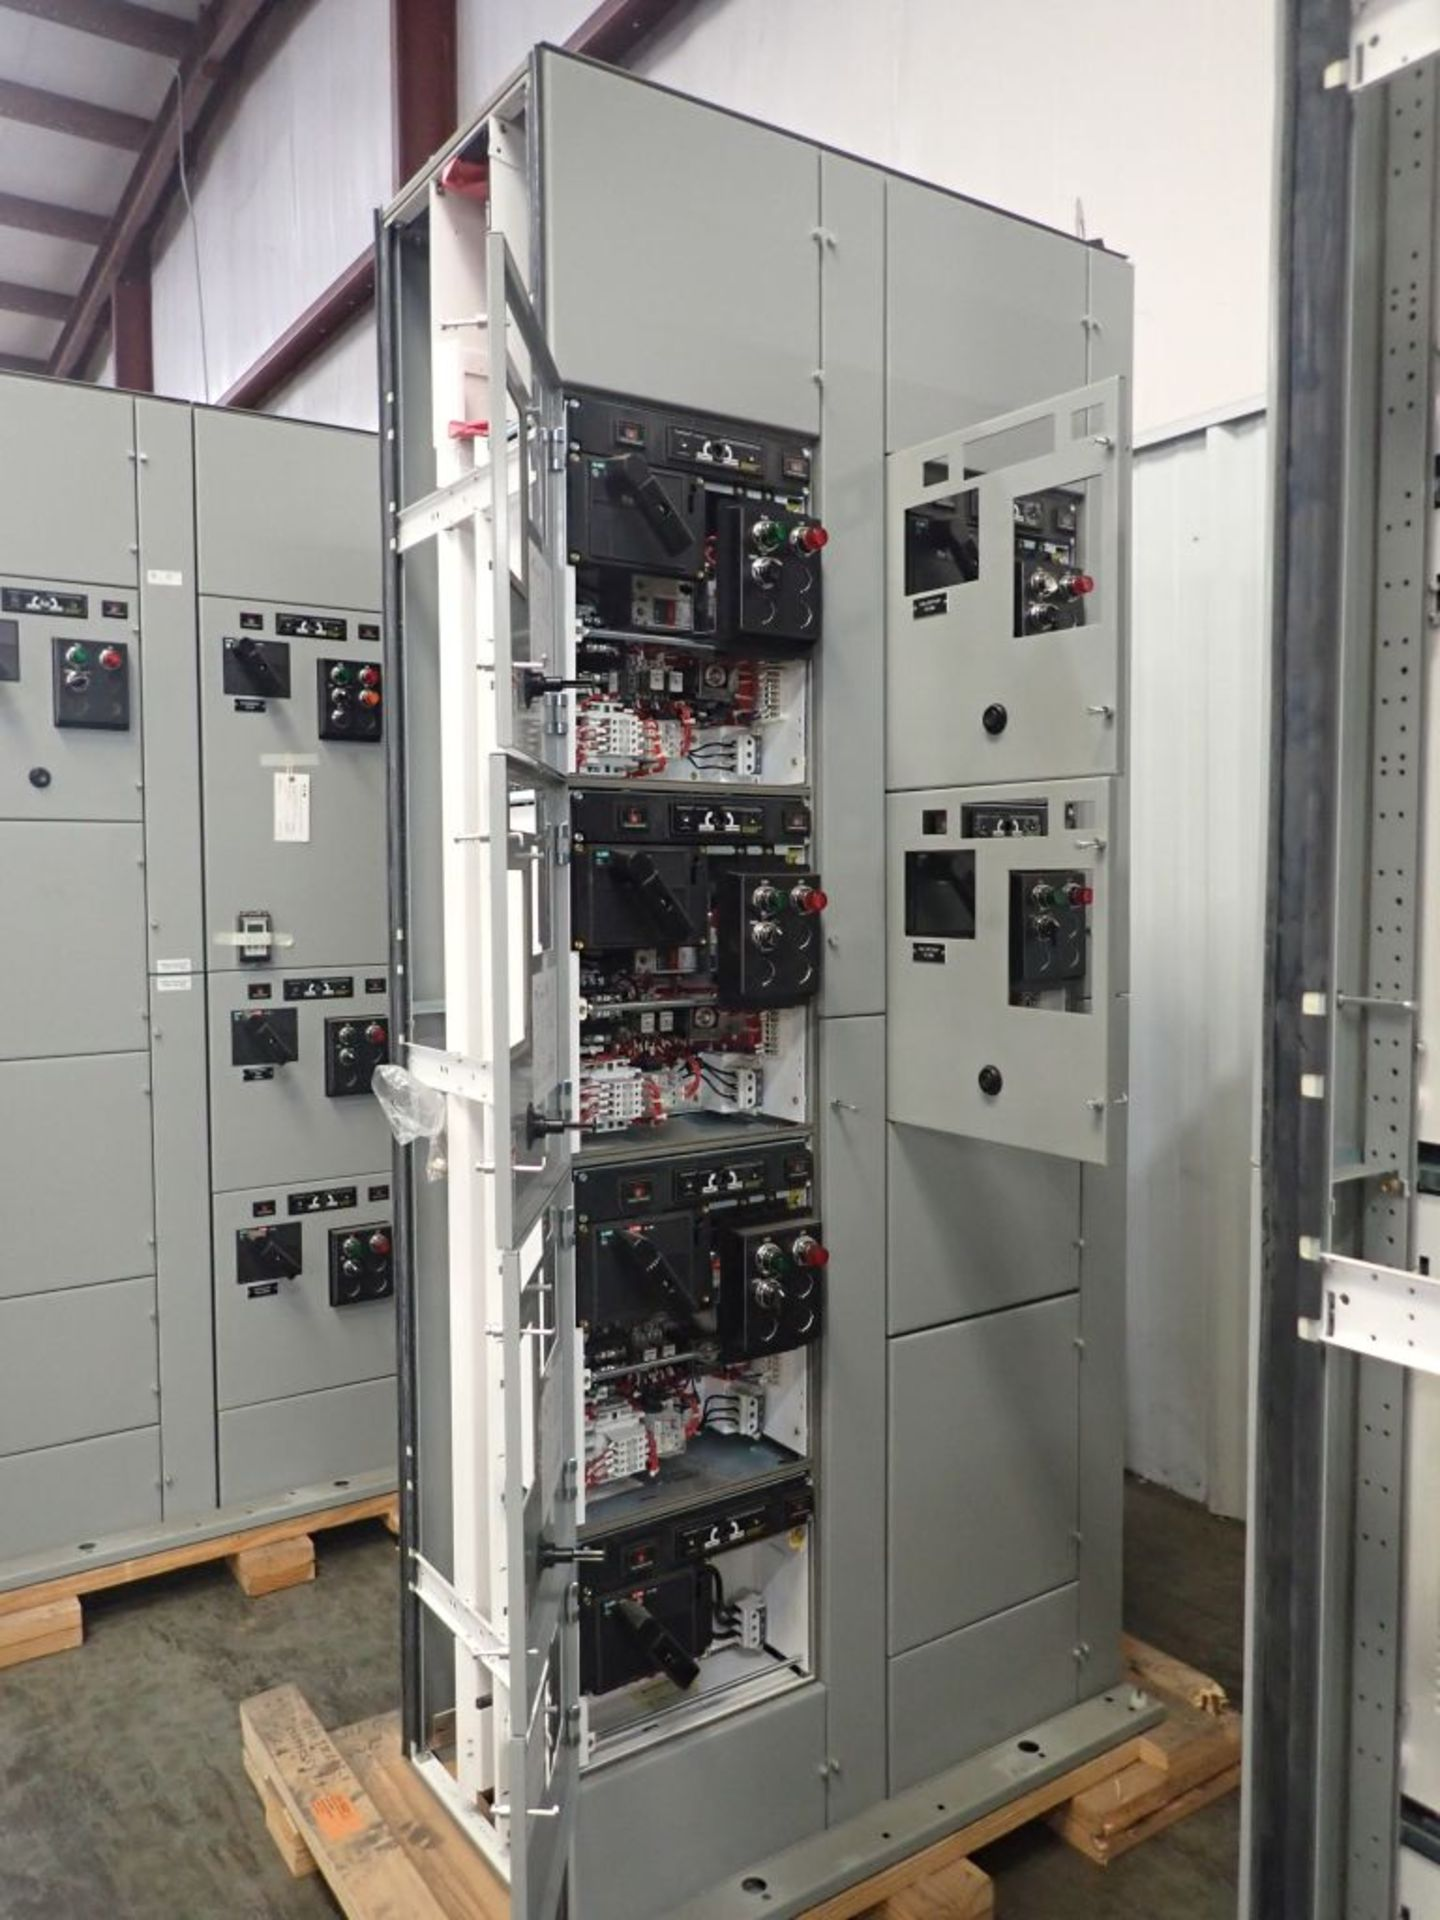 Eaton Freedom 2100 Series Motor Control Center | (2) F206-7A-10HP; (3) F206-15A-10HP; (1) FDRB-100A; - Image 42 of 87